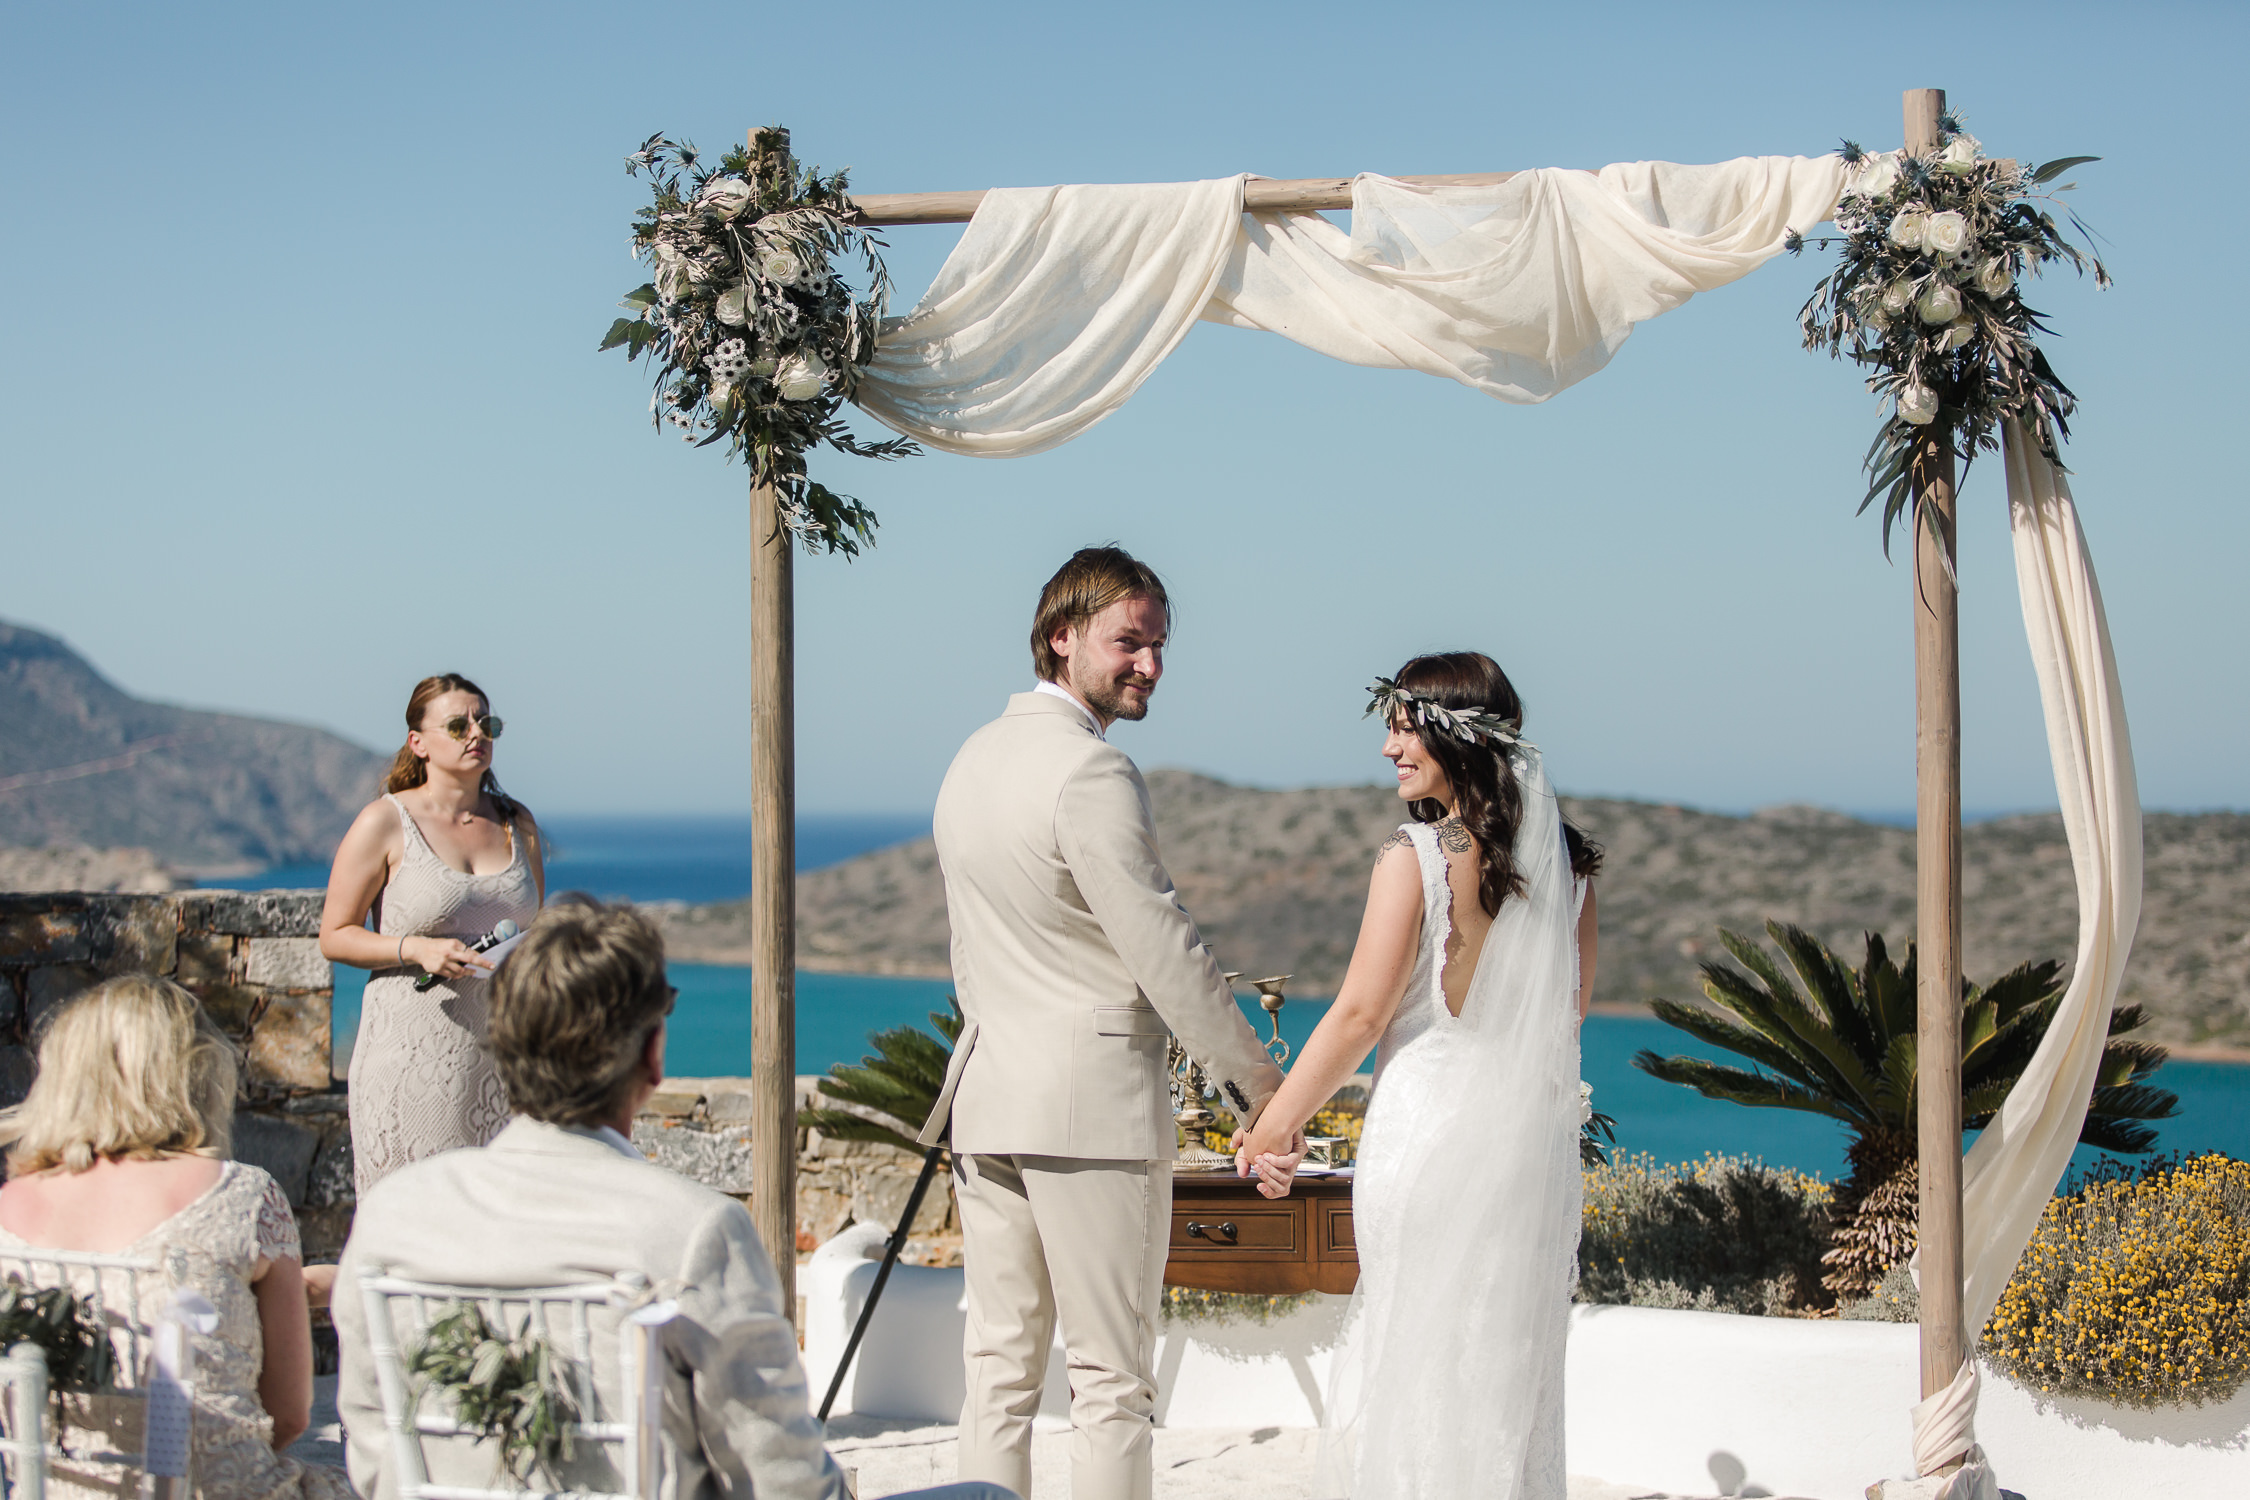 Fotomagoria - Elounda - Crete - Greece Wedding 156.jpg